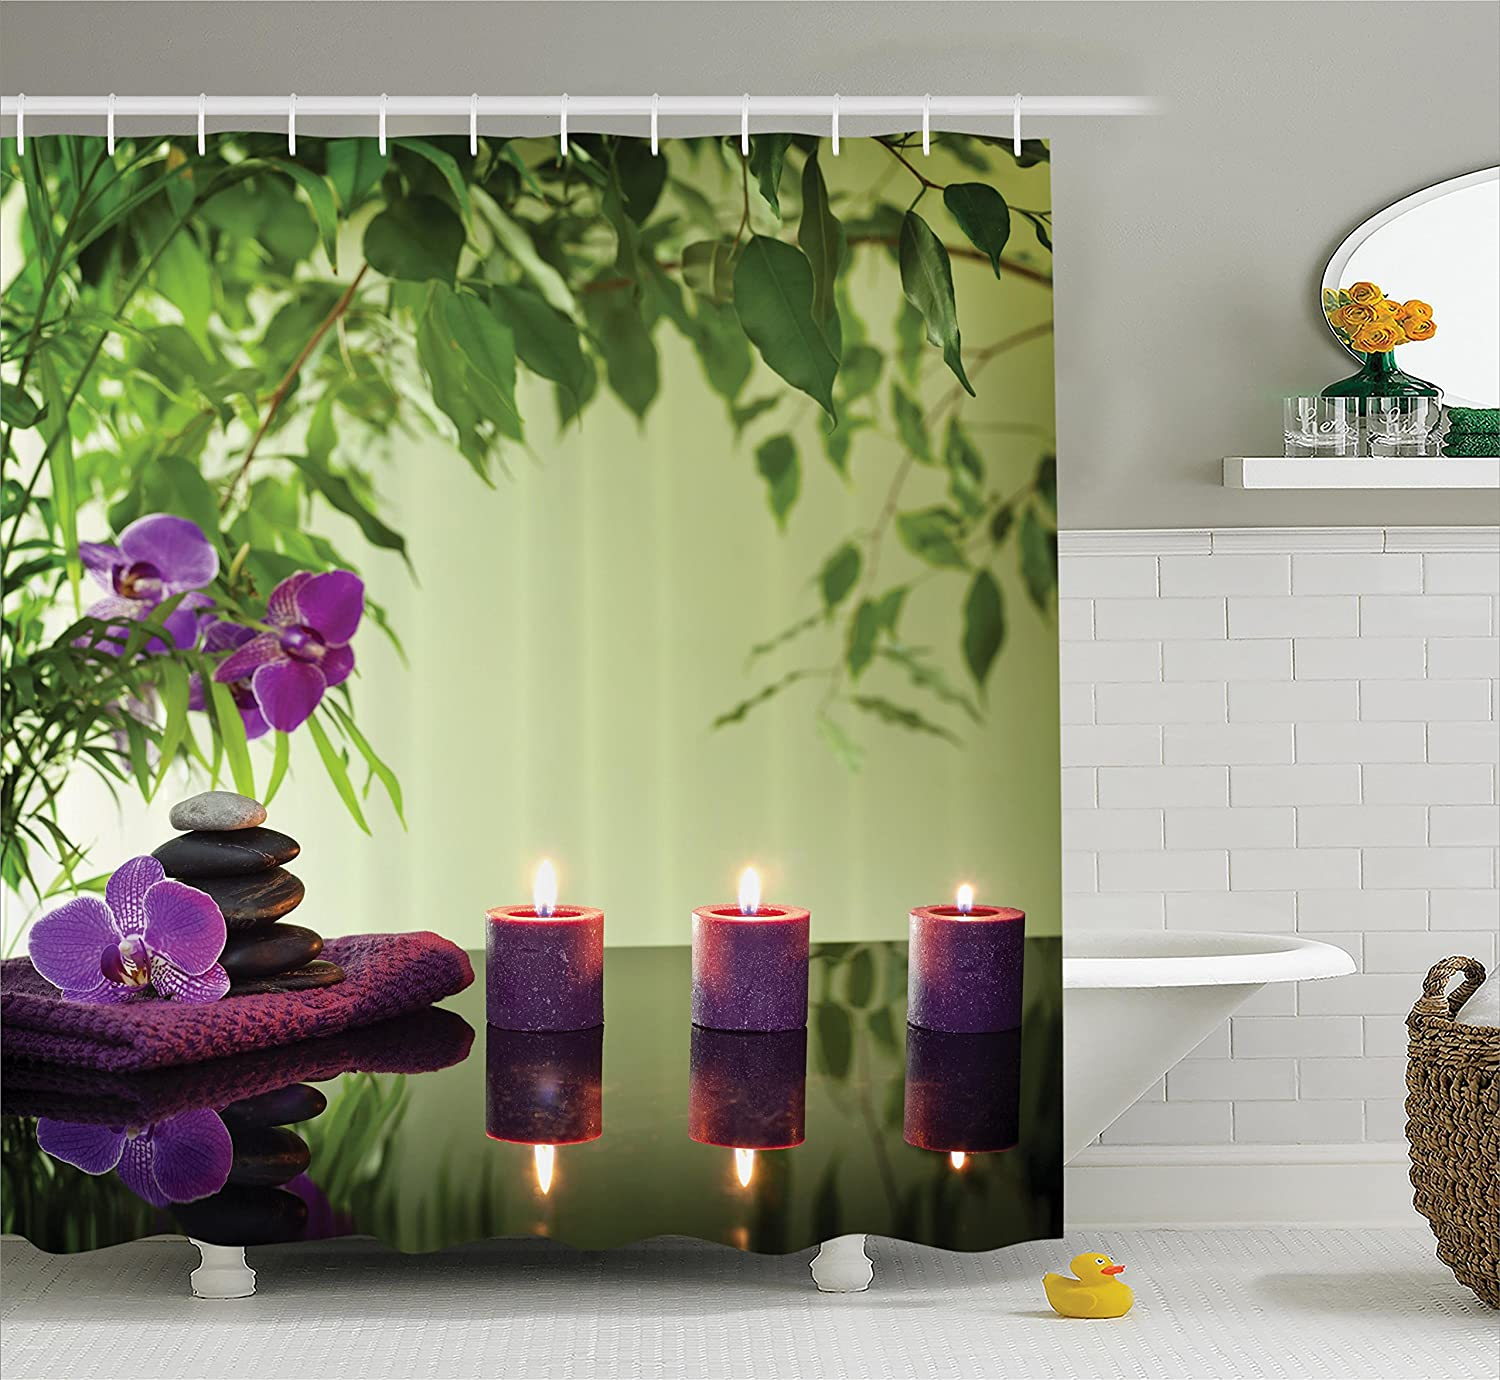 Ambesonne Spa Decor Shower Curtain Set, Zen Stones Aromatic Candles and Orchids Blooms Treatment Vacation, Bathroom Accessories, 69W X 70L Inches